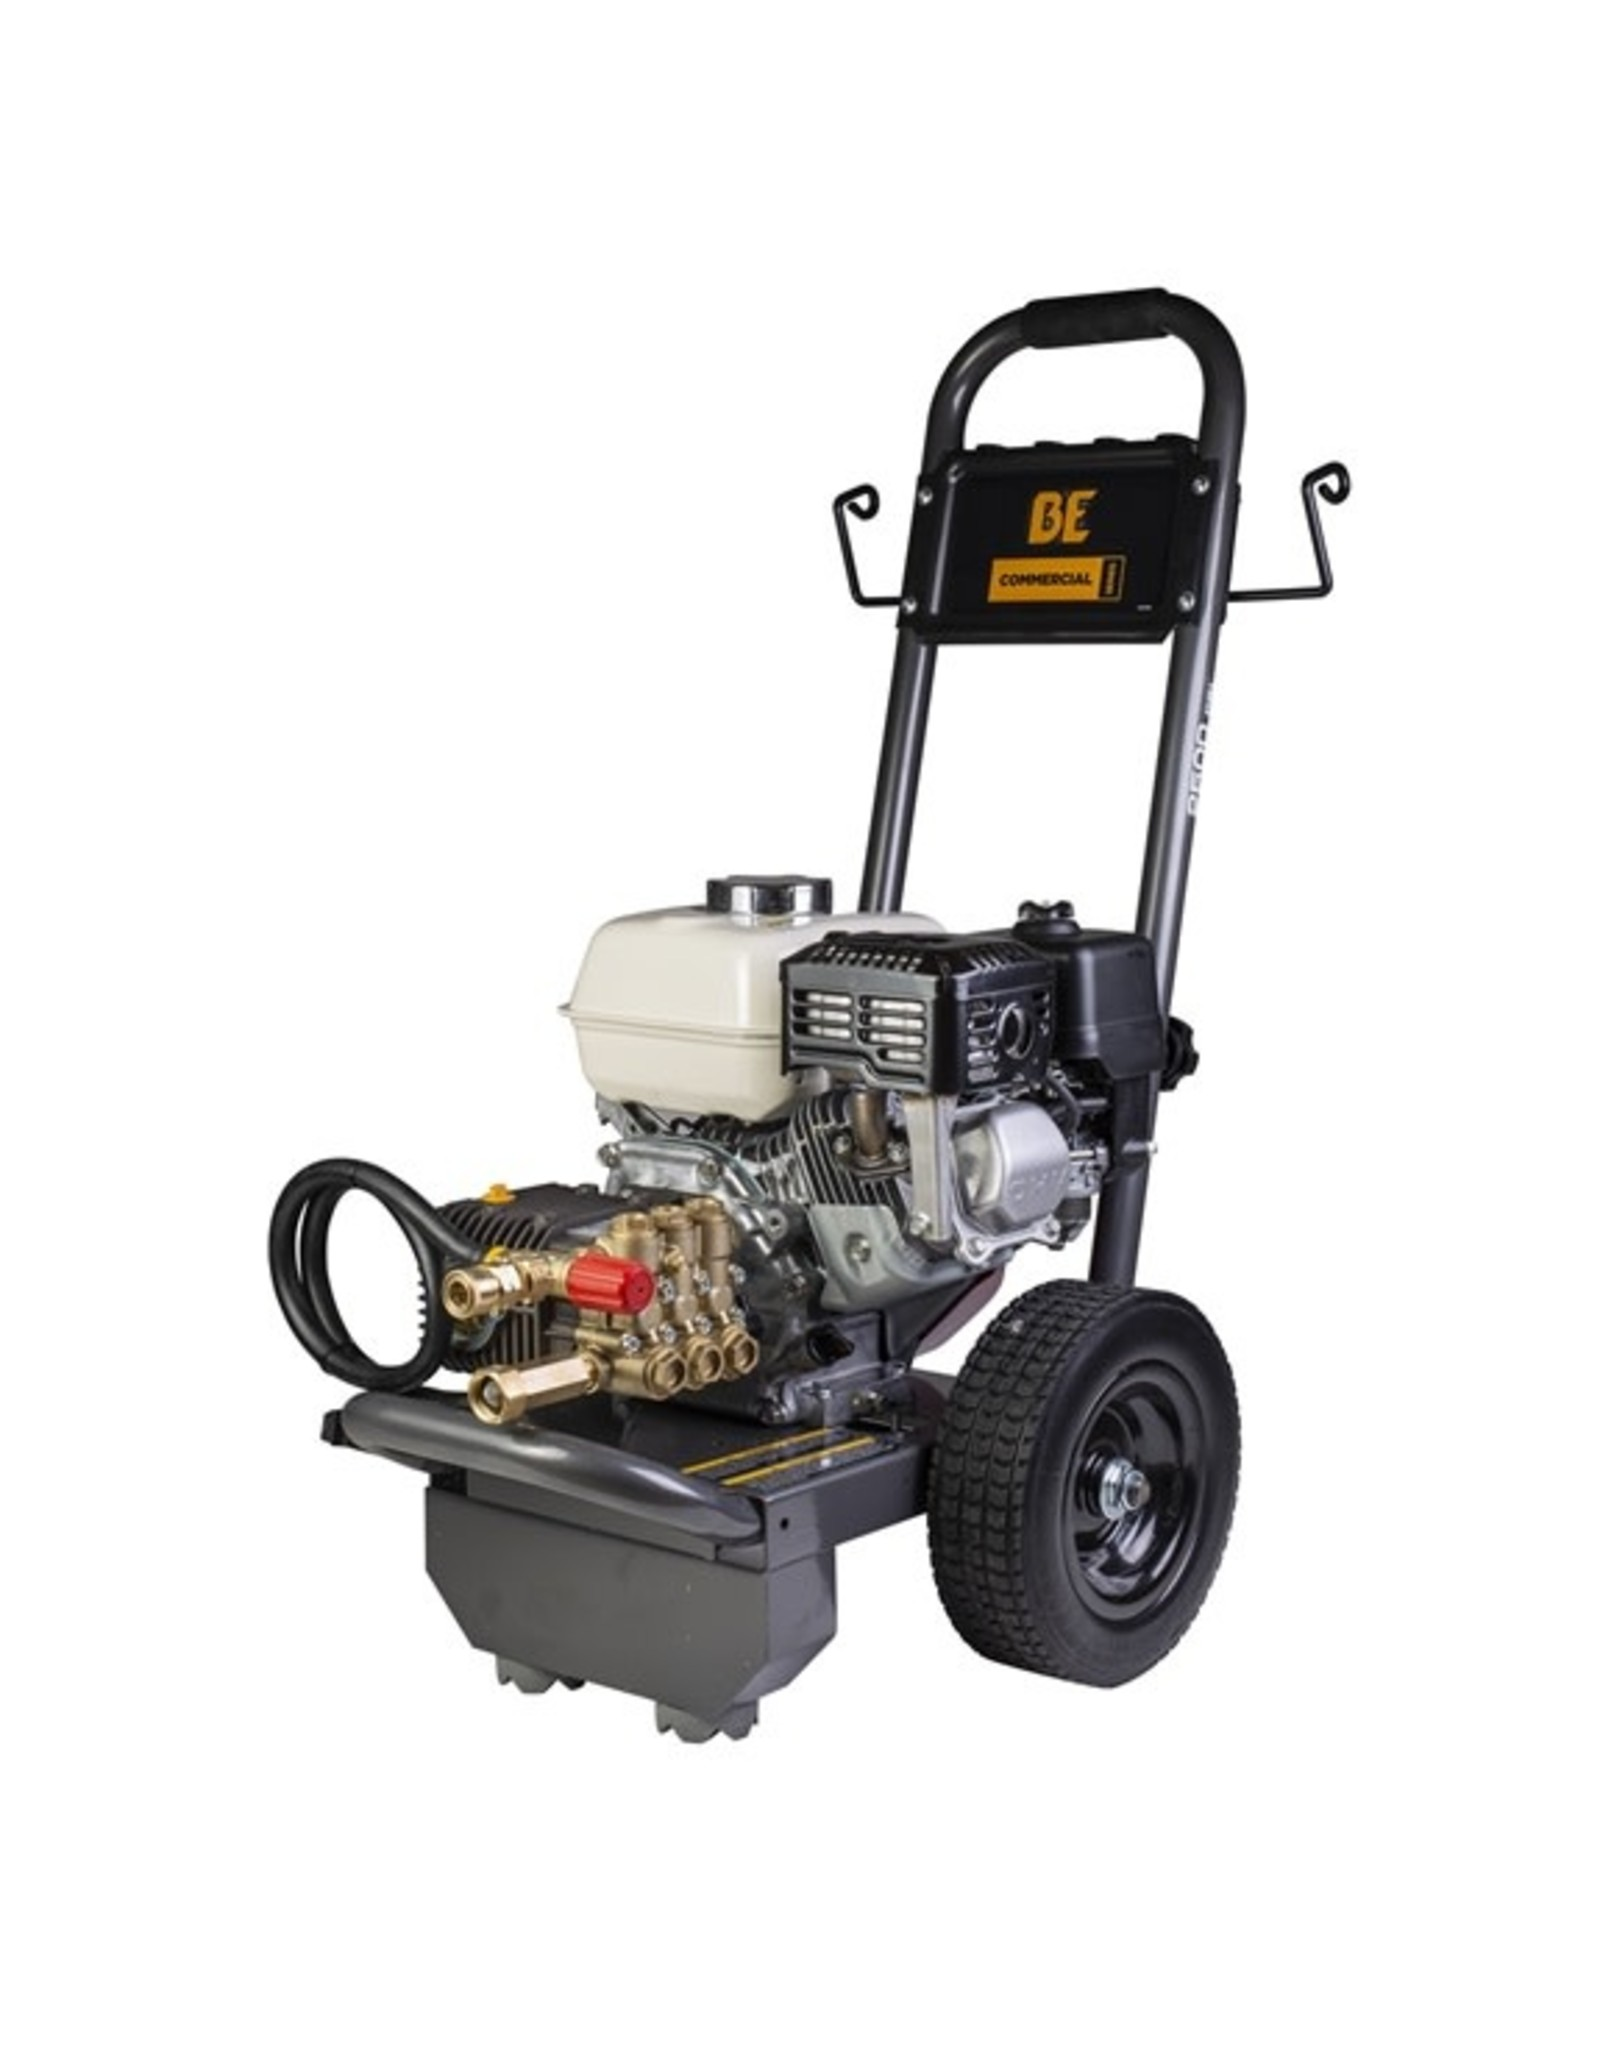 BE B2565HCS 196cc 2500 PSI